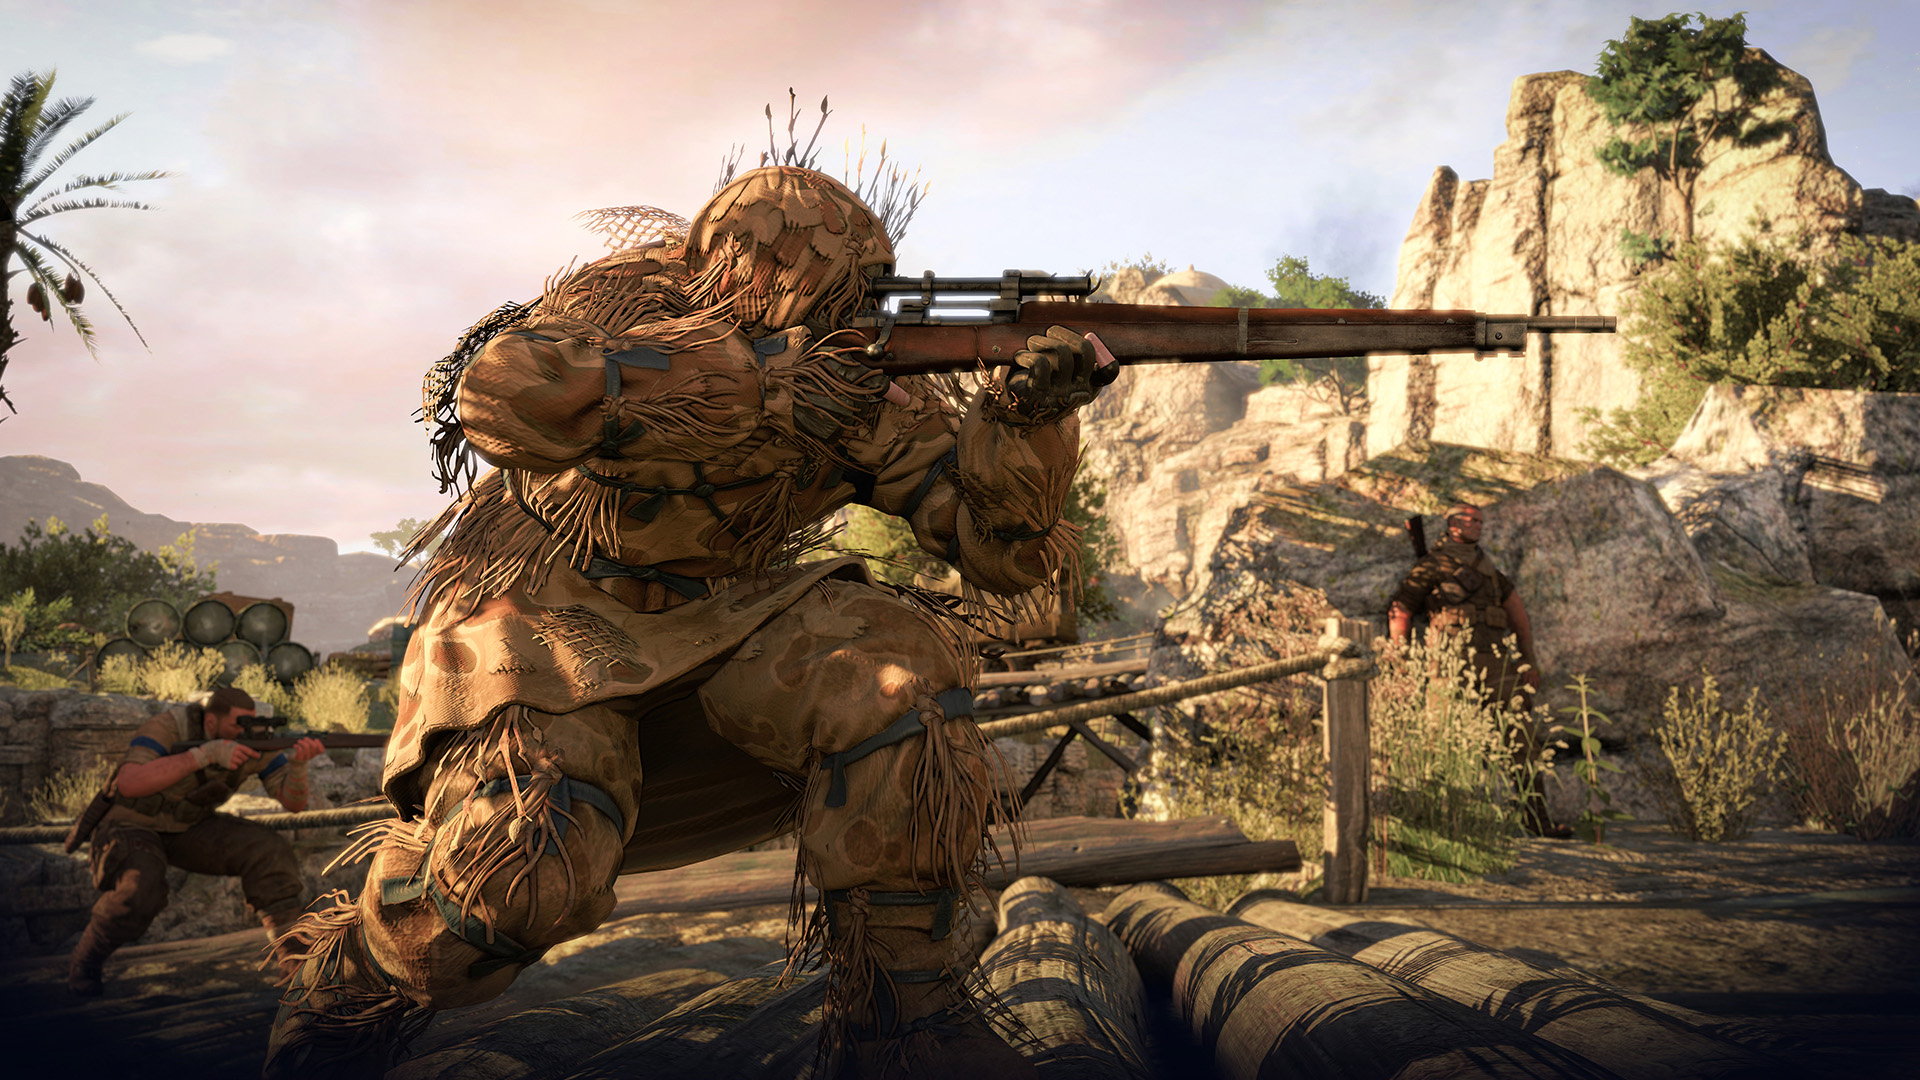 Latest UK Gaming Charts – Sniper Elite 3 Surprises by Firing Itself into Top Spot